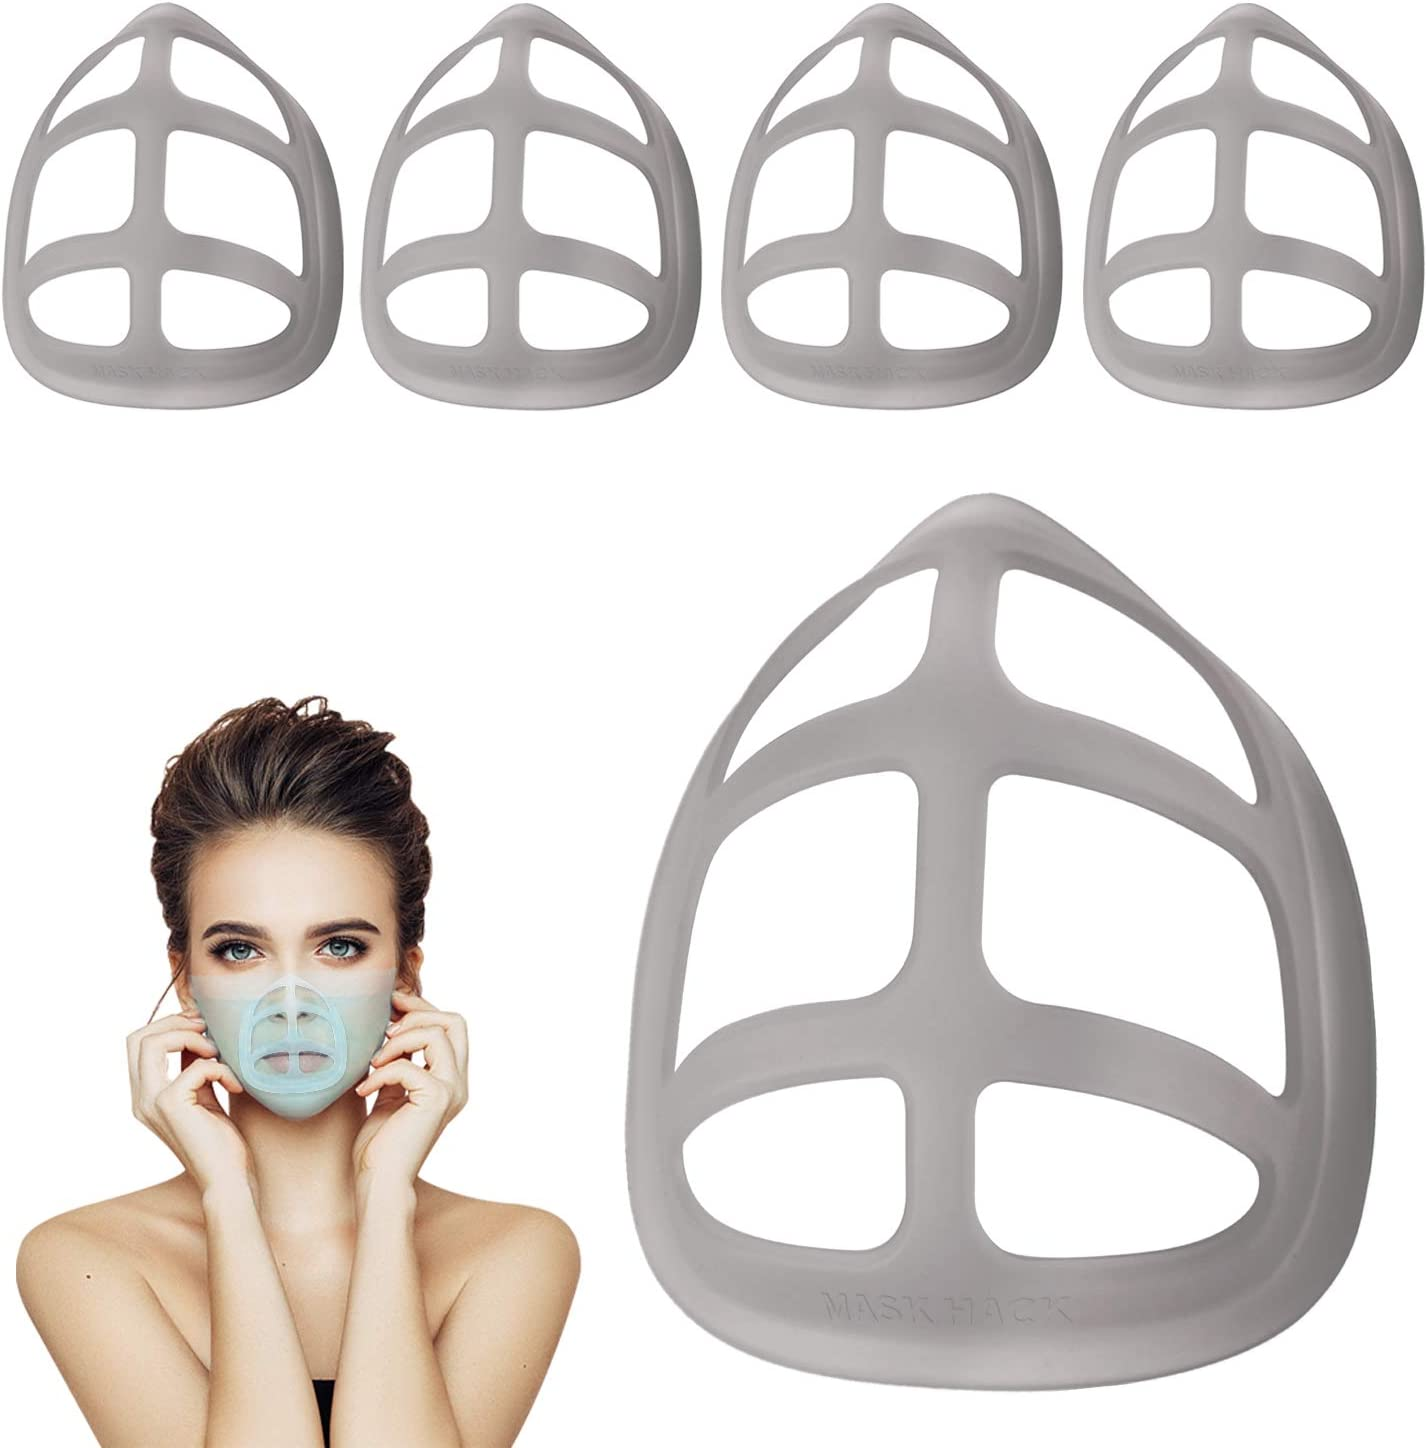 As Cool Turtle Mask Insert as seen on Tv, Breathe cup Helps You Breathe Easier,Silicone Face Mask Inner Support Frame, Washable Reusable, Fits Men and Women,black Large size 5Pack